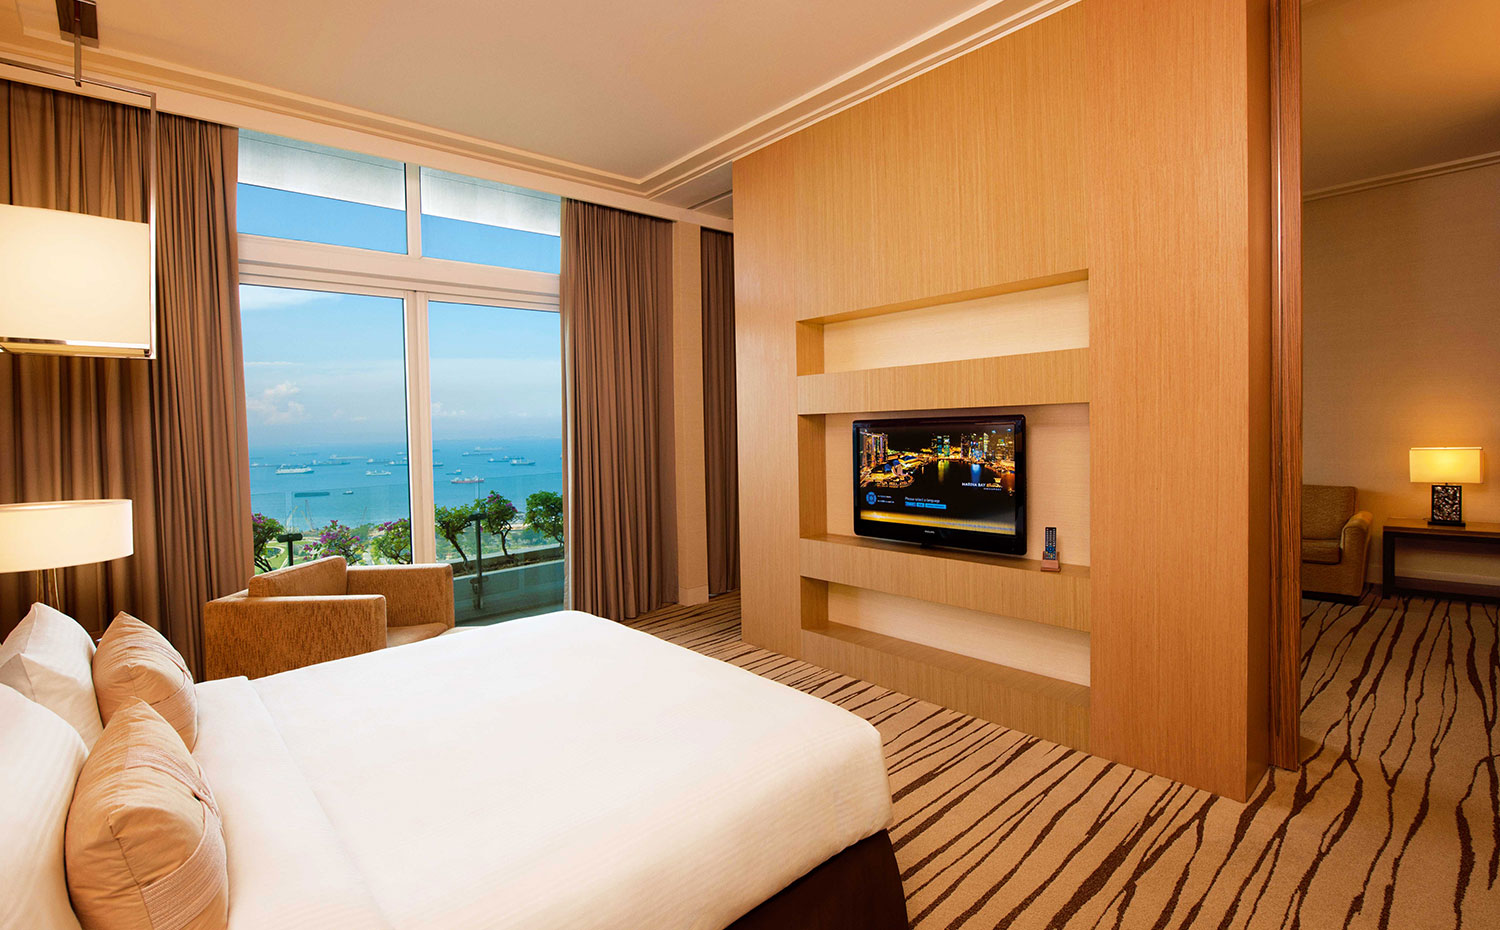 Lowest Price Guarantee for Hotel Rooms in Marina Bay Sands : book early2 from www.marinabaysands.com size 1500 x 930 jpeg 269kB